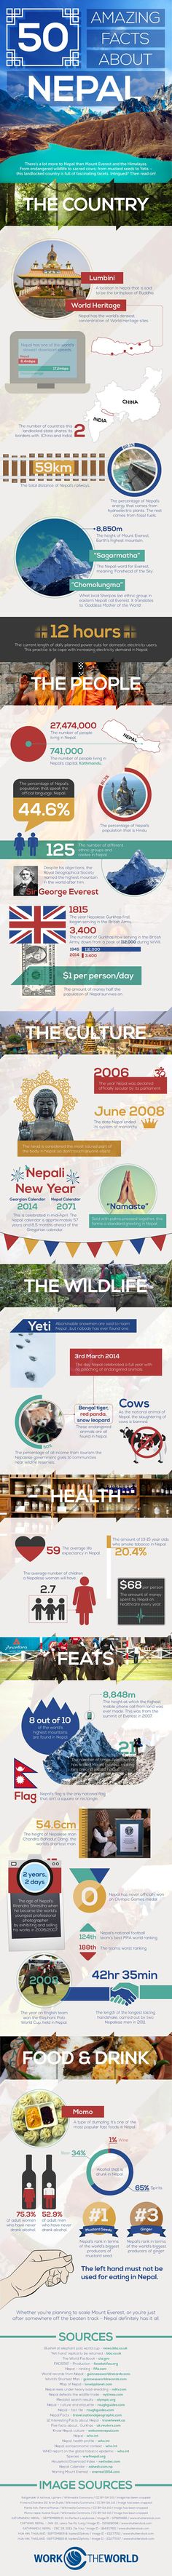 50 Amazing Facts About Nepal [Infographic]   Work the World